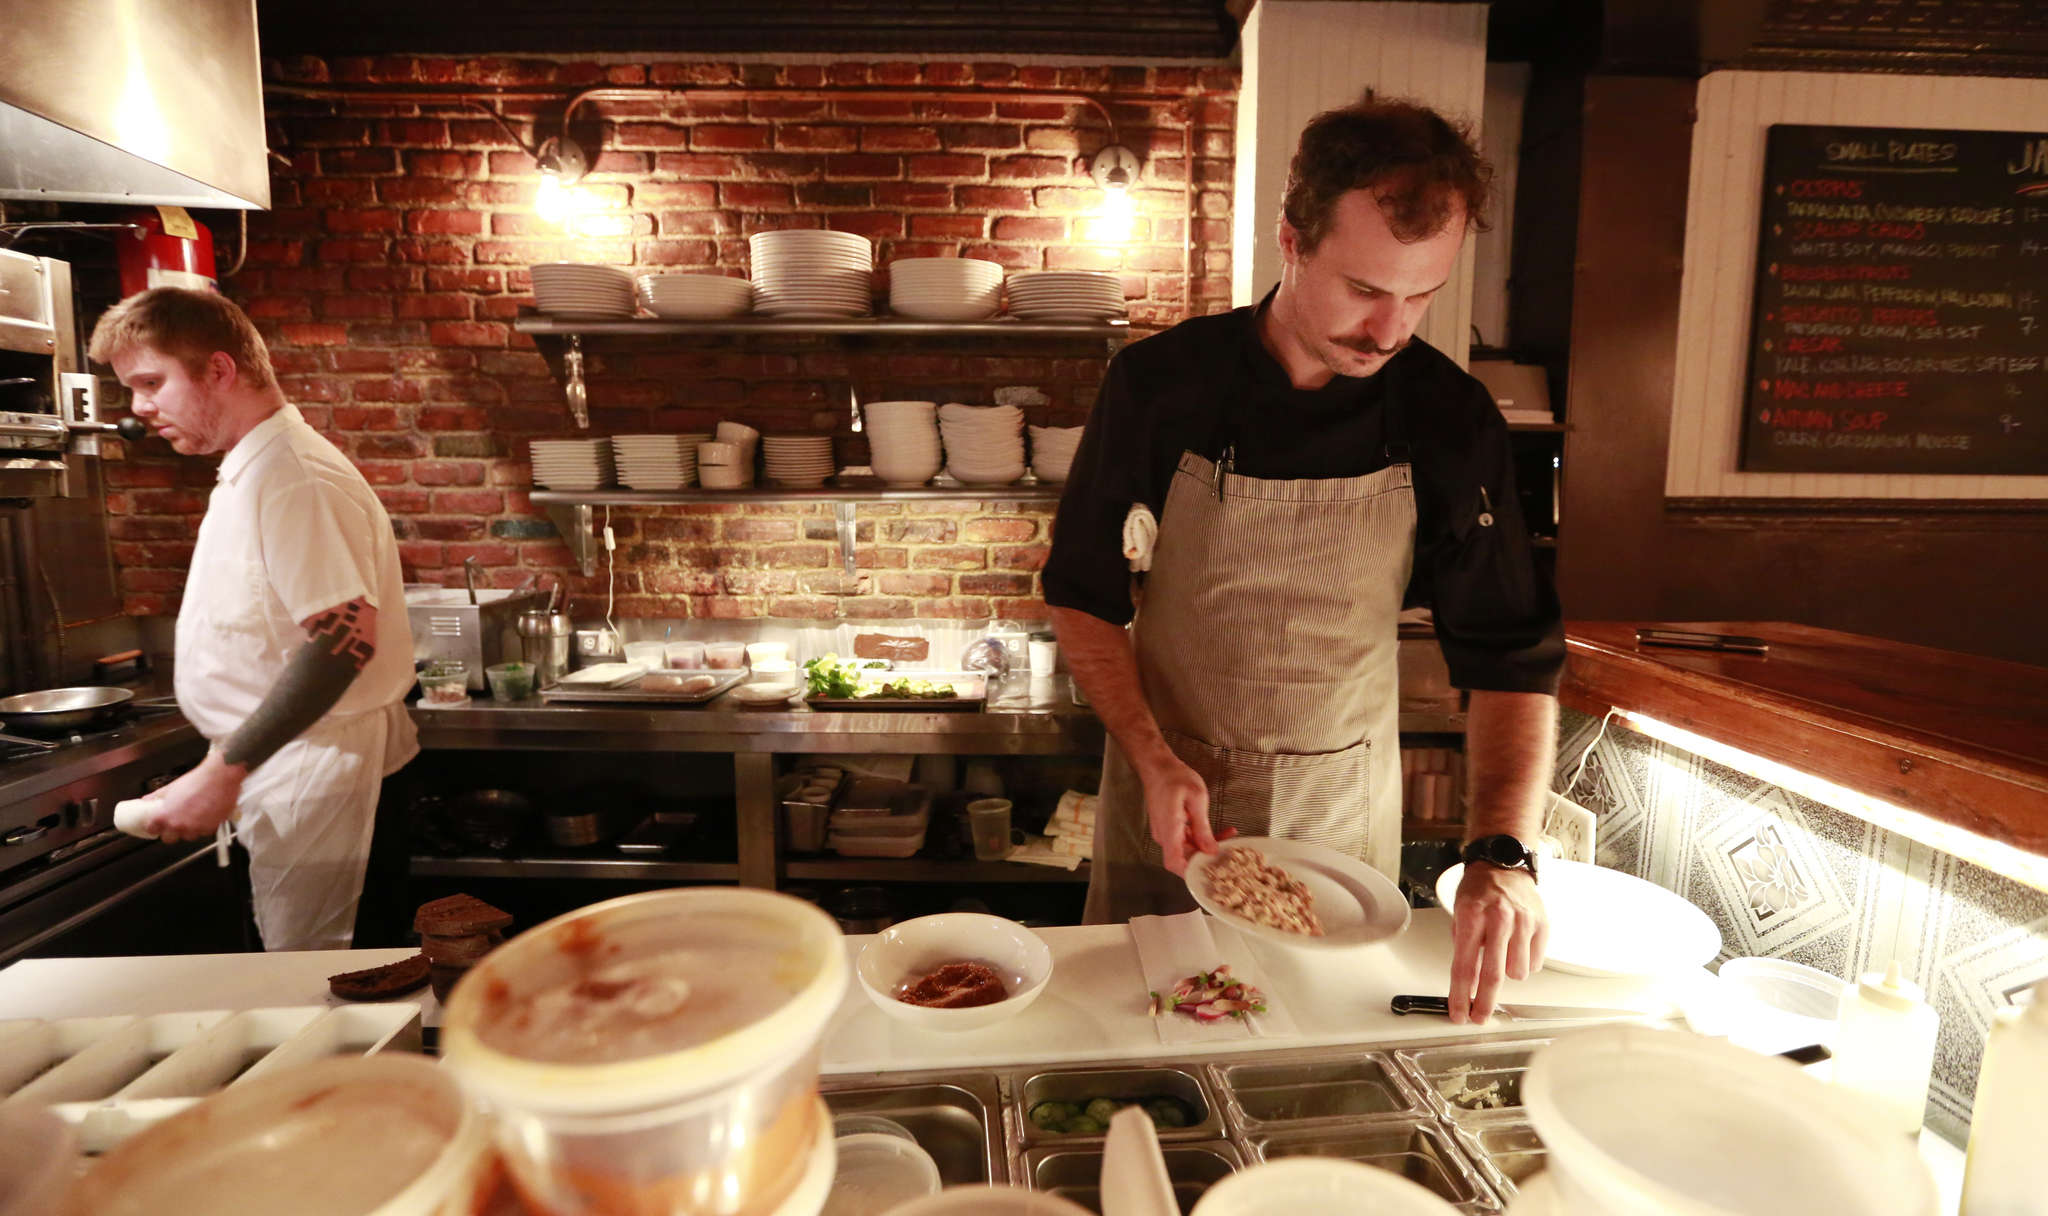 Chef Matthew Gansert (right) at work in Jaxon´s kitchen. His menu features fluid New American cooking.